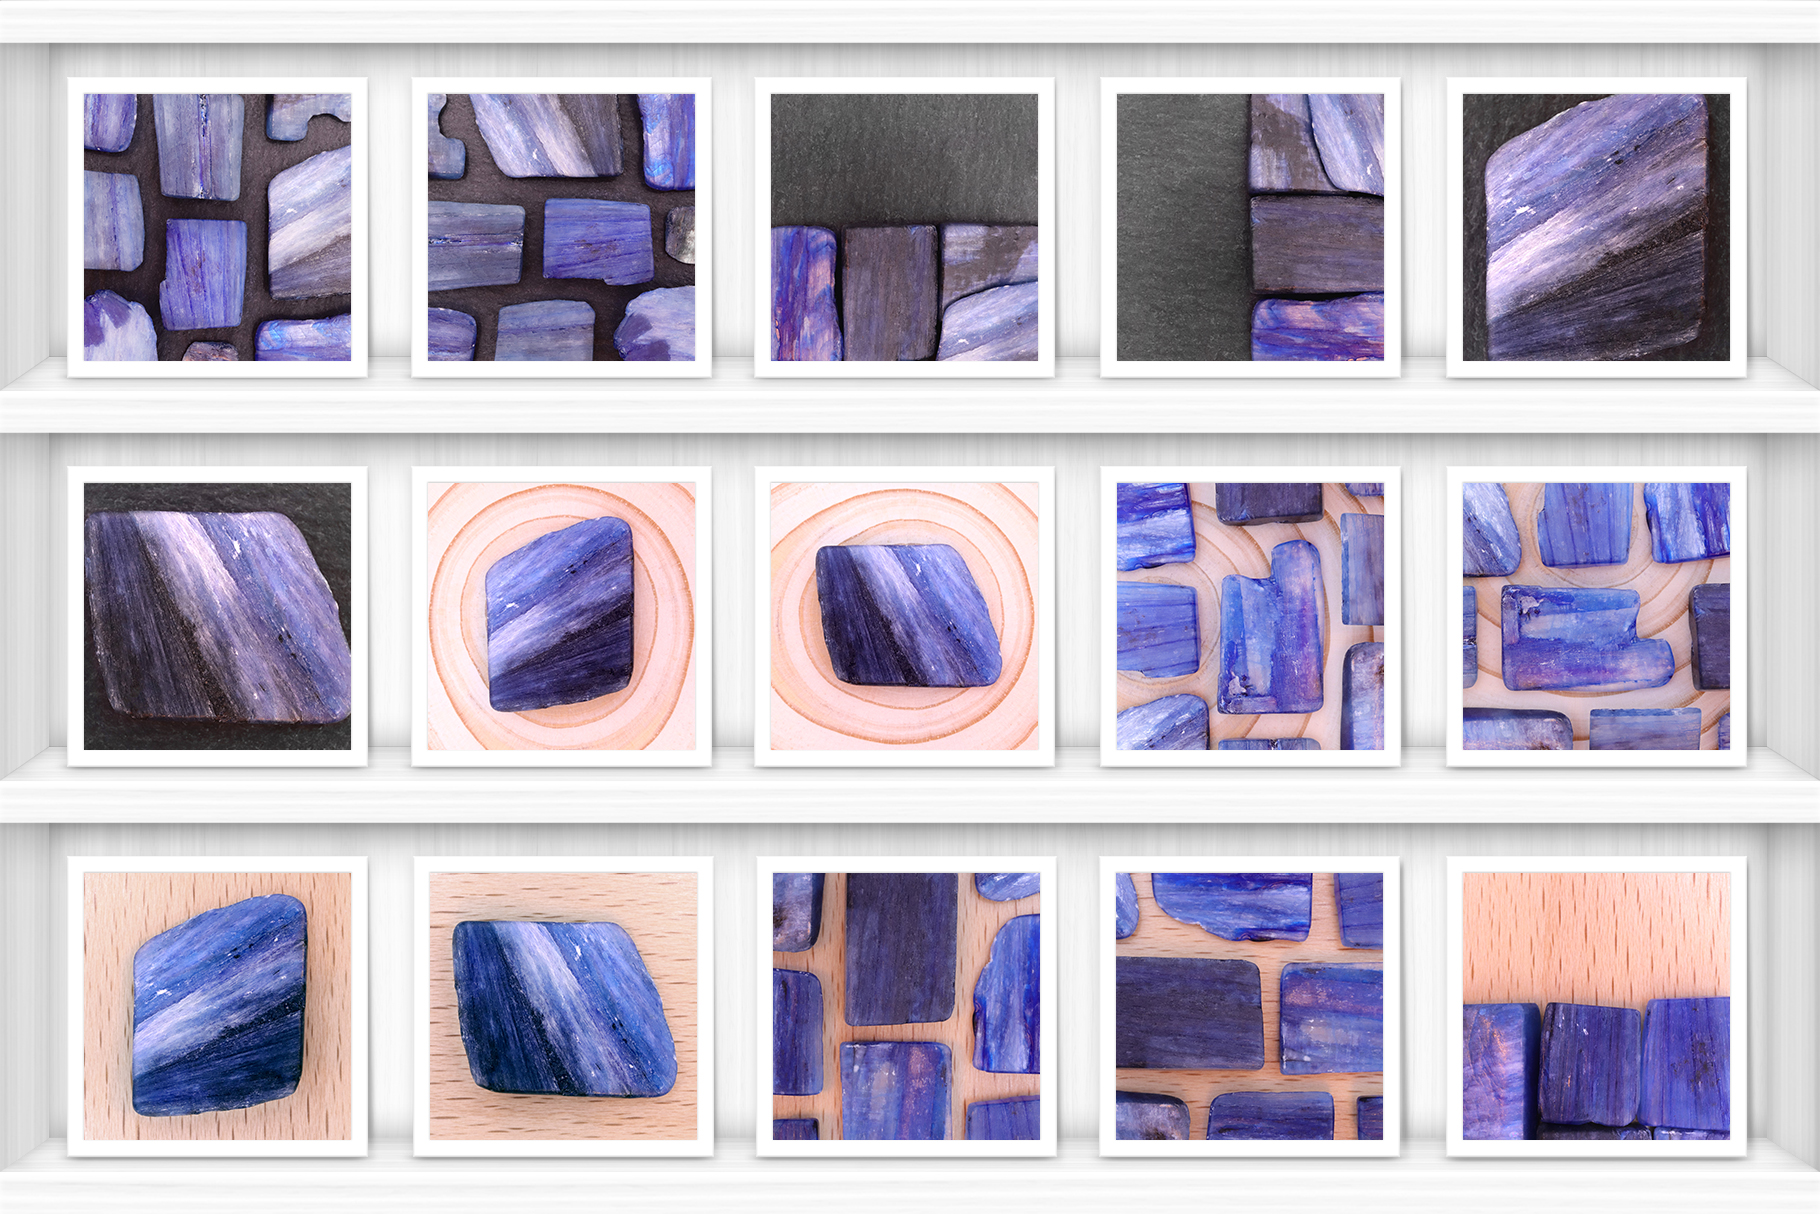 46 Kyanite Background Textures Samples Showcase Shelves Preview